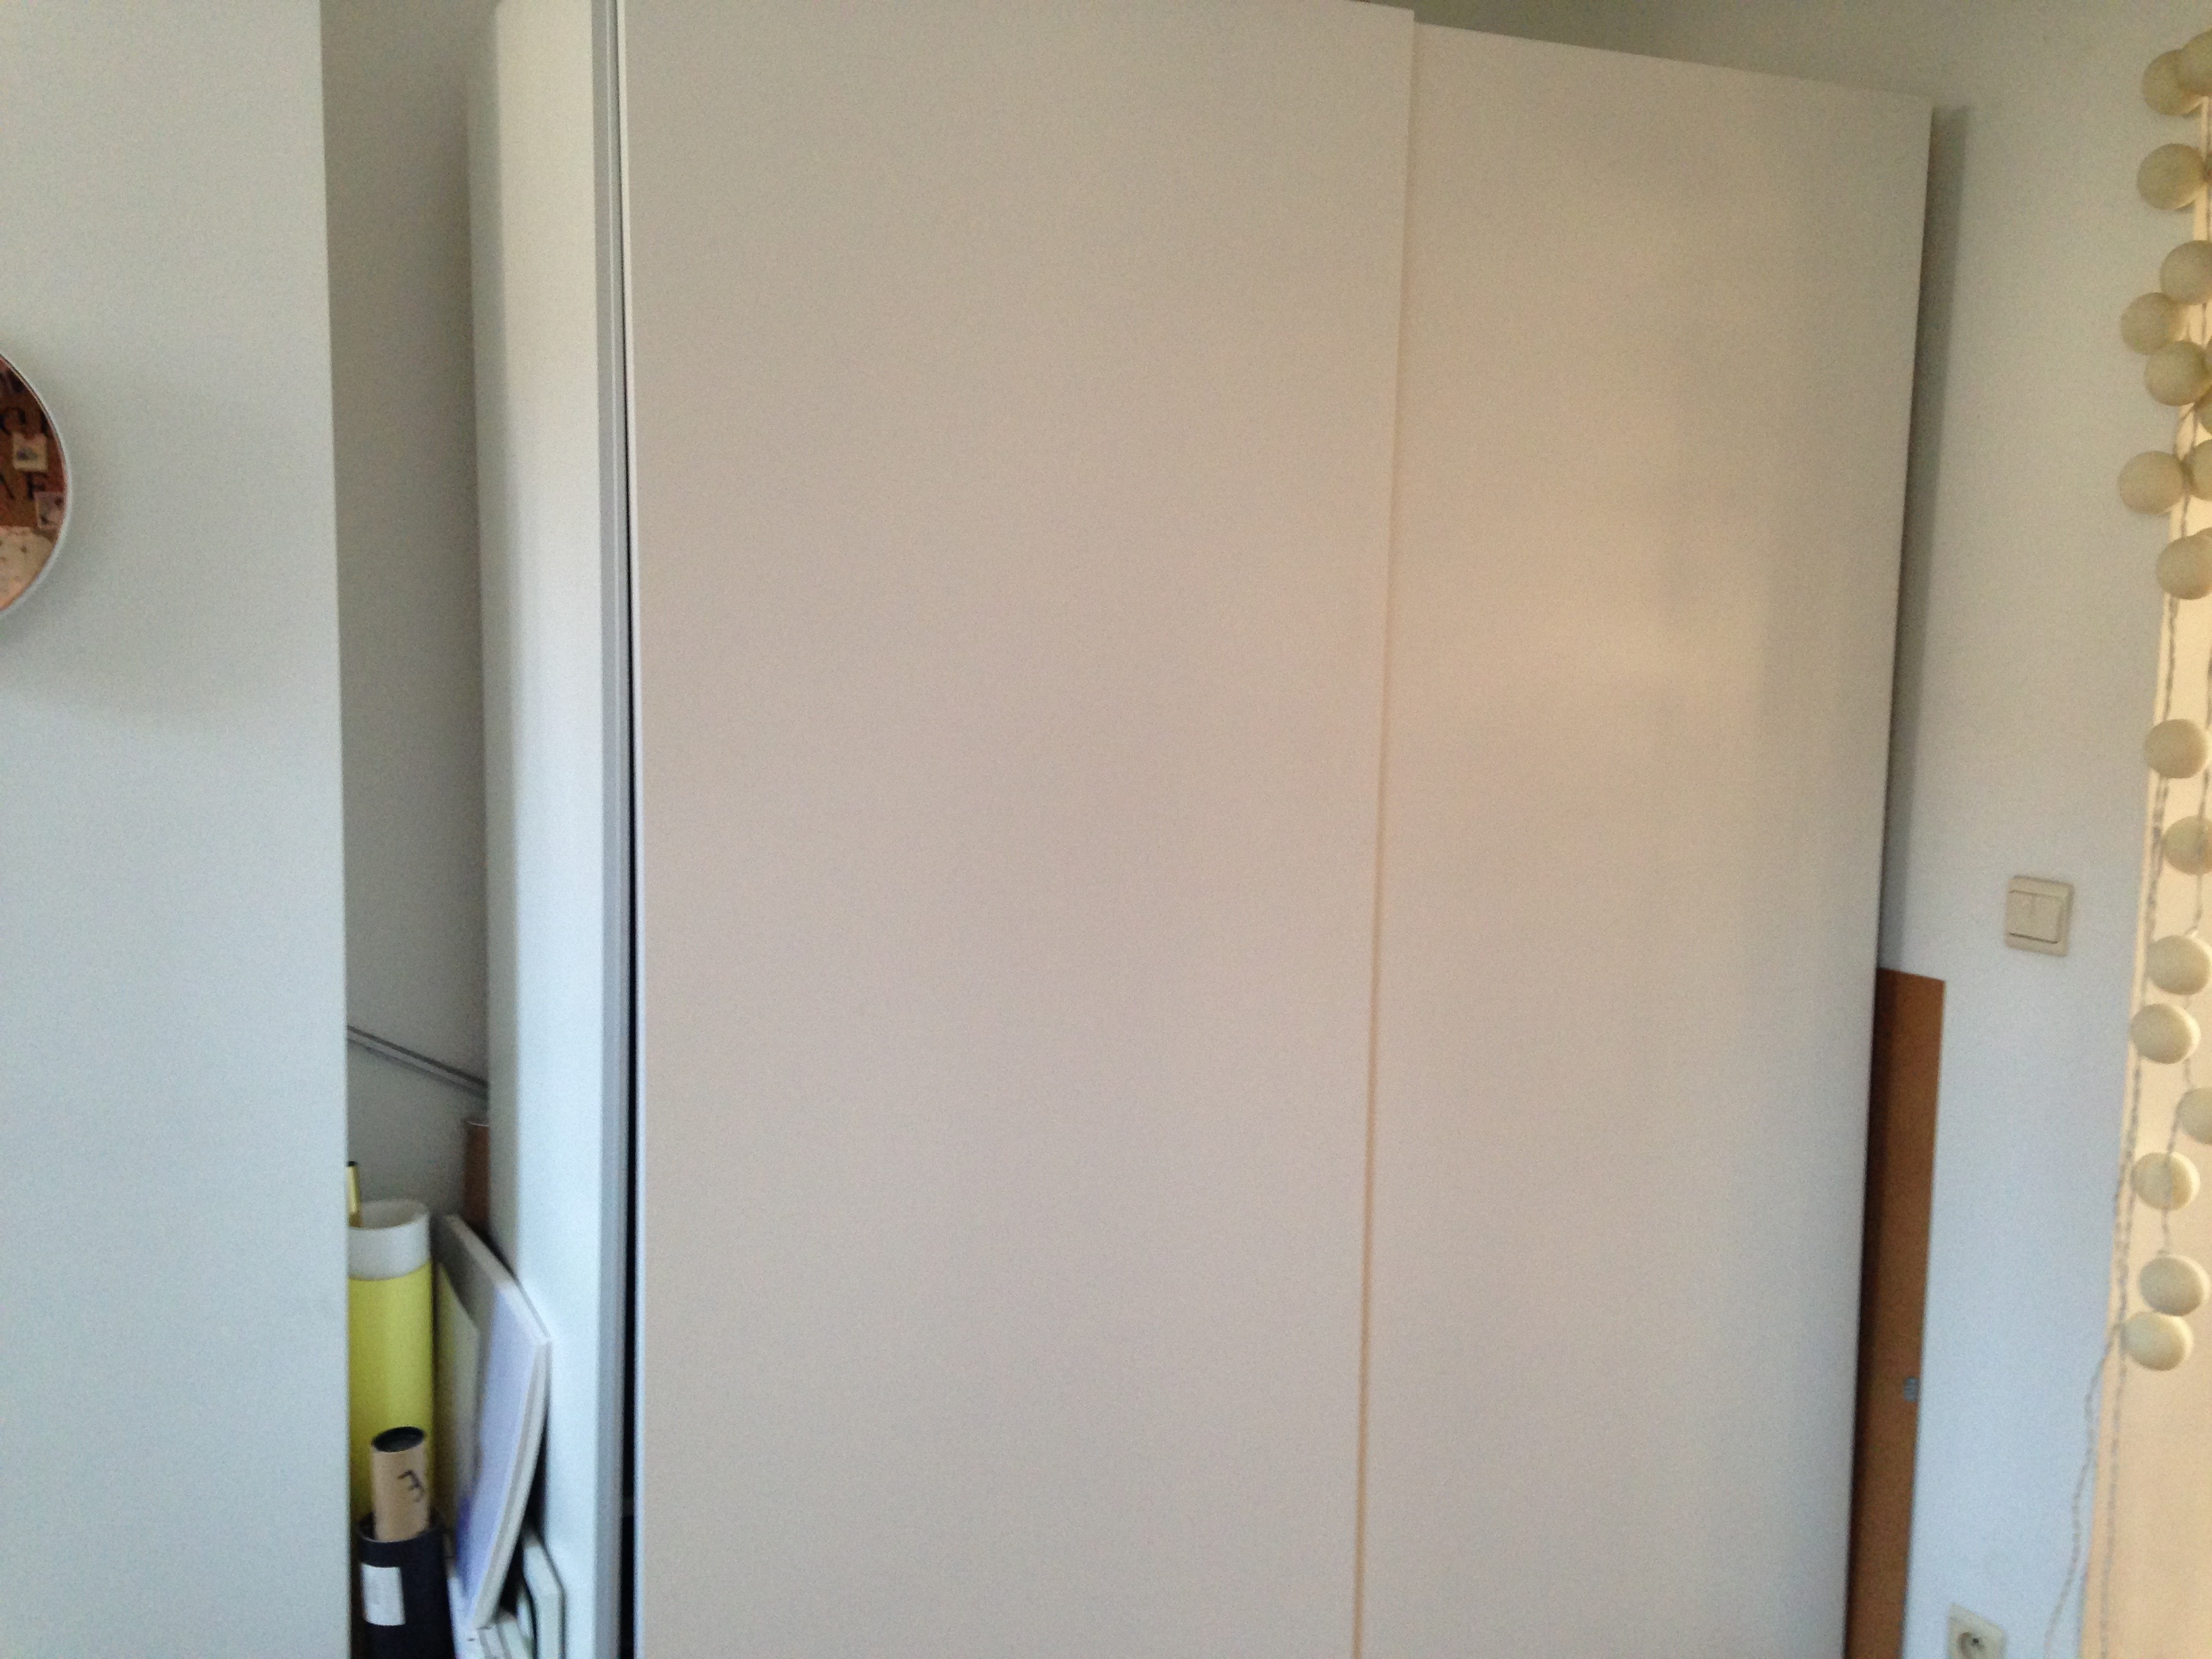 Wardrobe Lock Sliding Doors Tips Tools We Are Your Airbnb